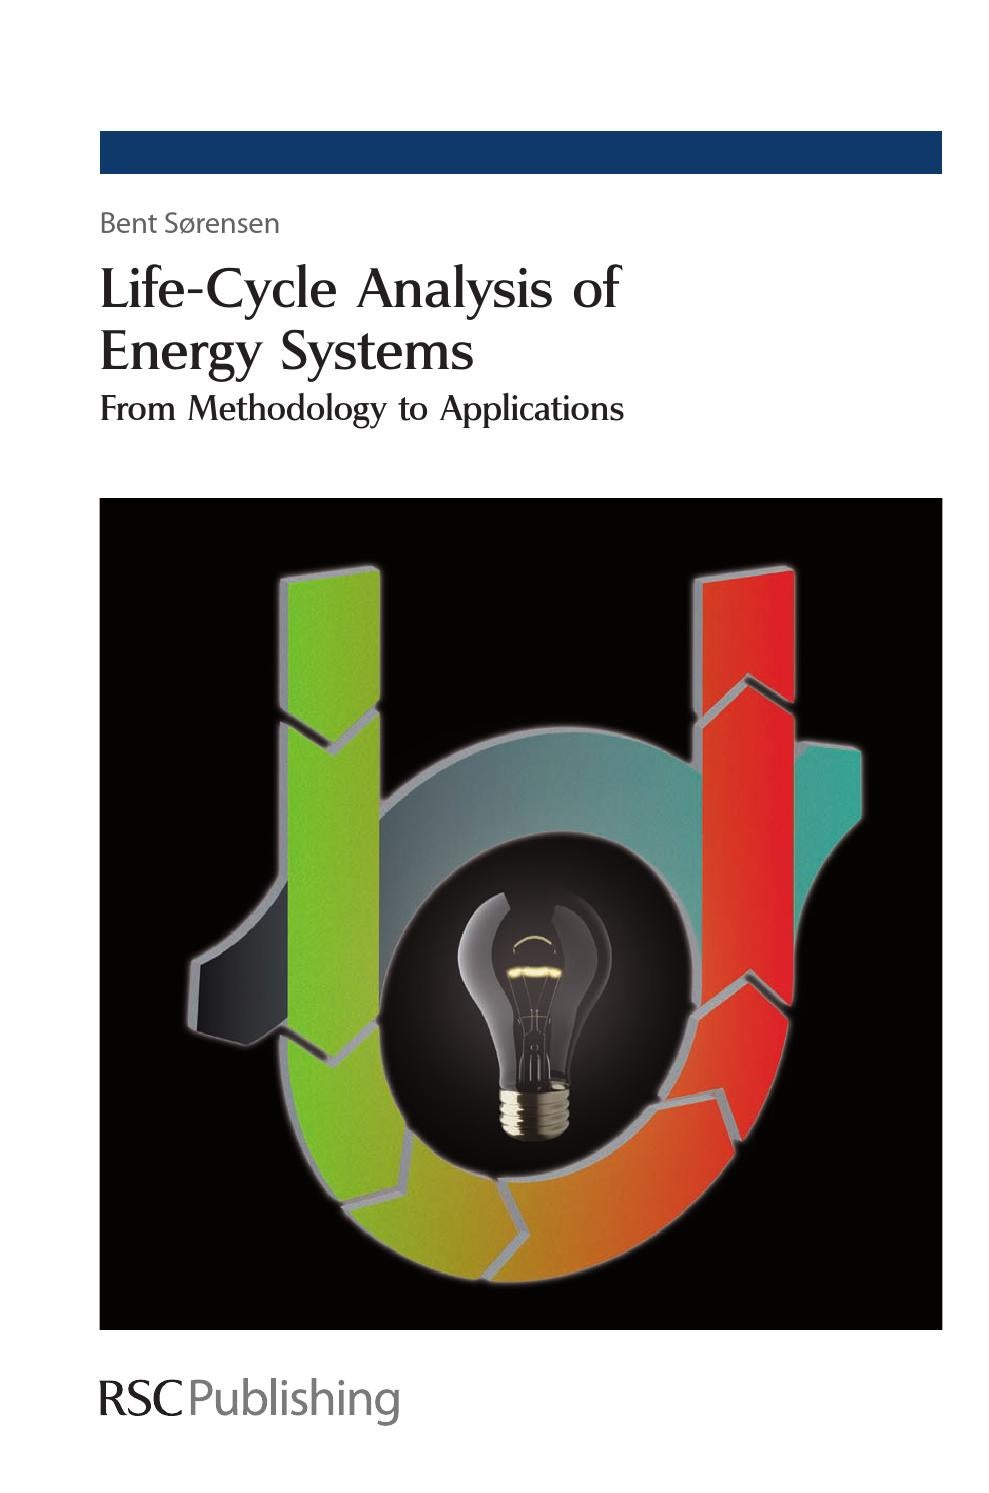 1849731454lifecycle By Your Energy Issuu Bunn Hg Wiring Diagram